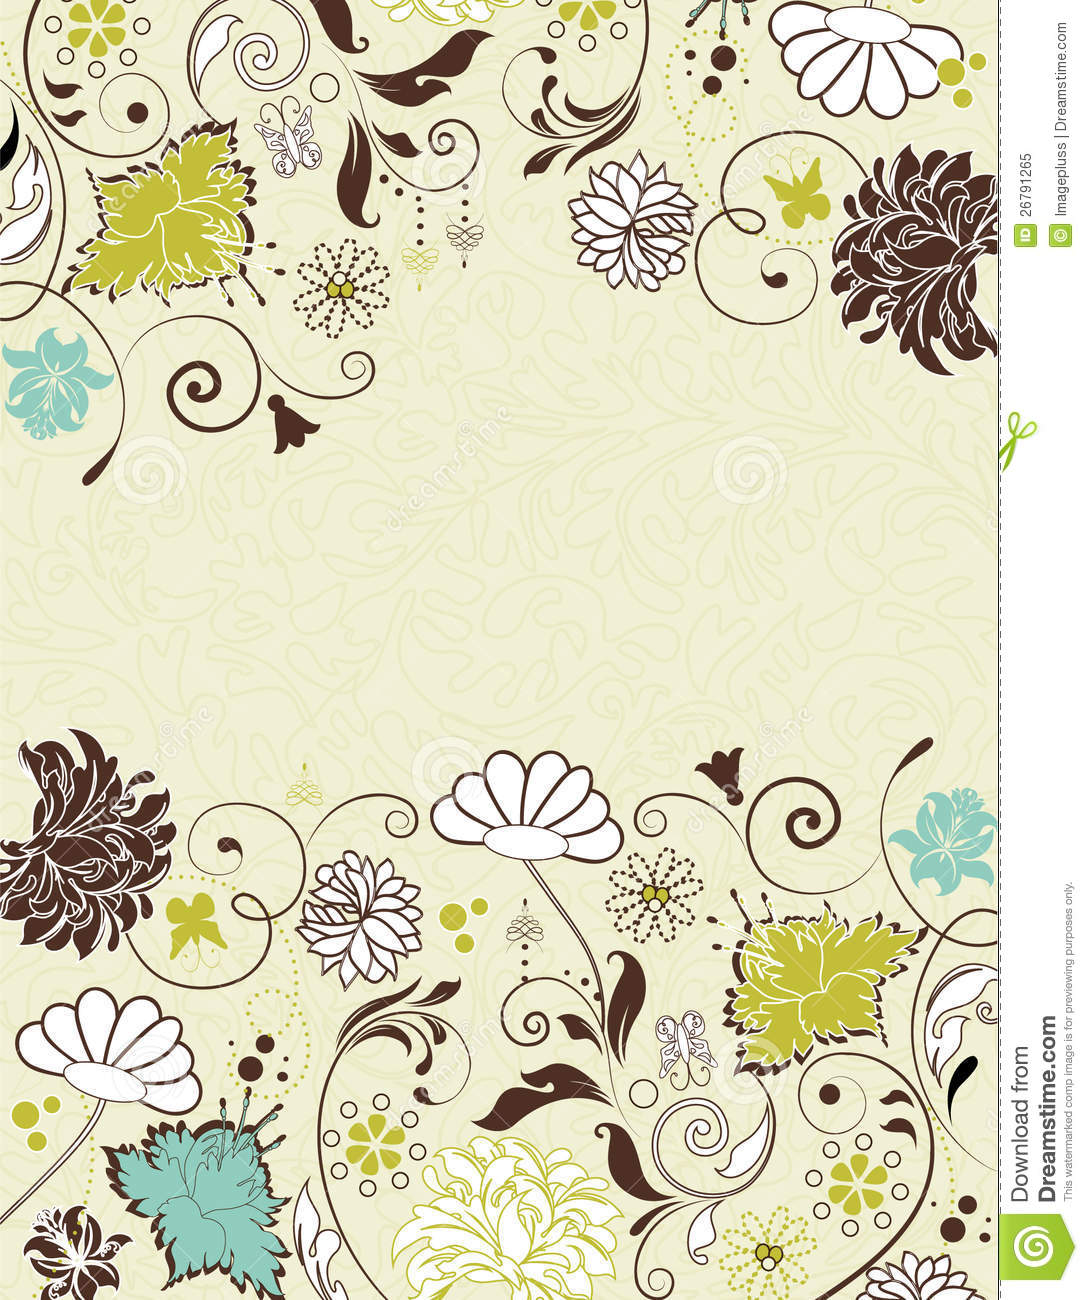 Vintage Invitation Card With Floral Background Royalty